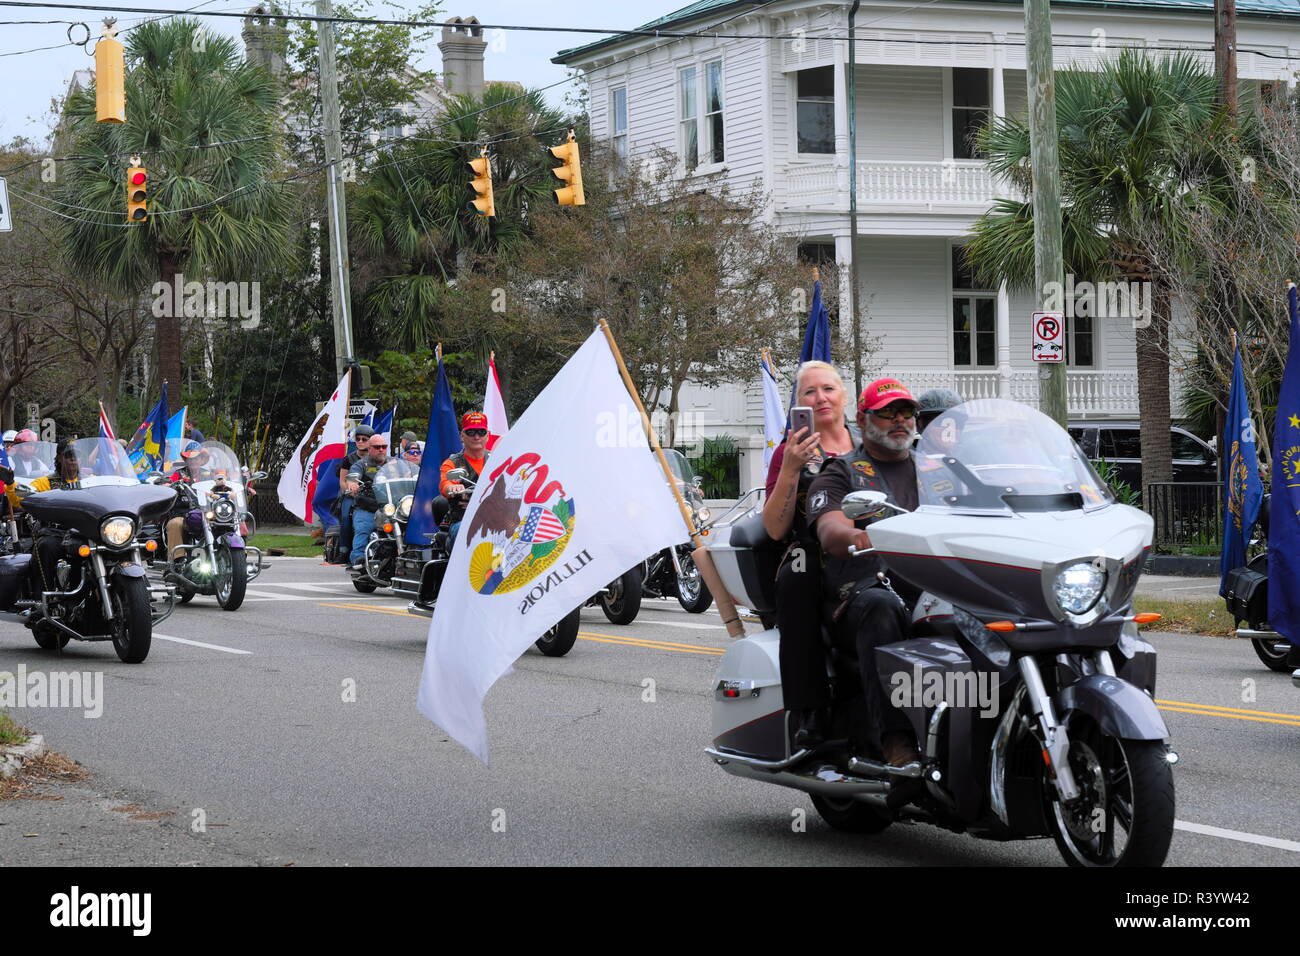 U.S. Veterans Day Parade of Motorcycles with Flags Flying Stock Photo